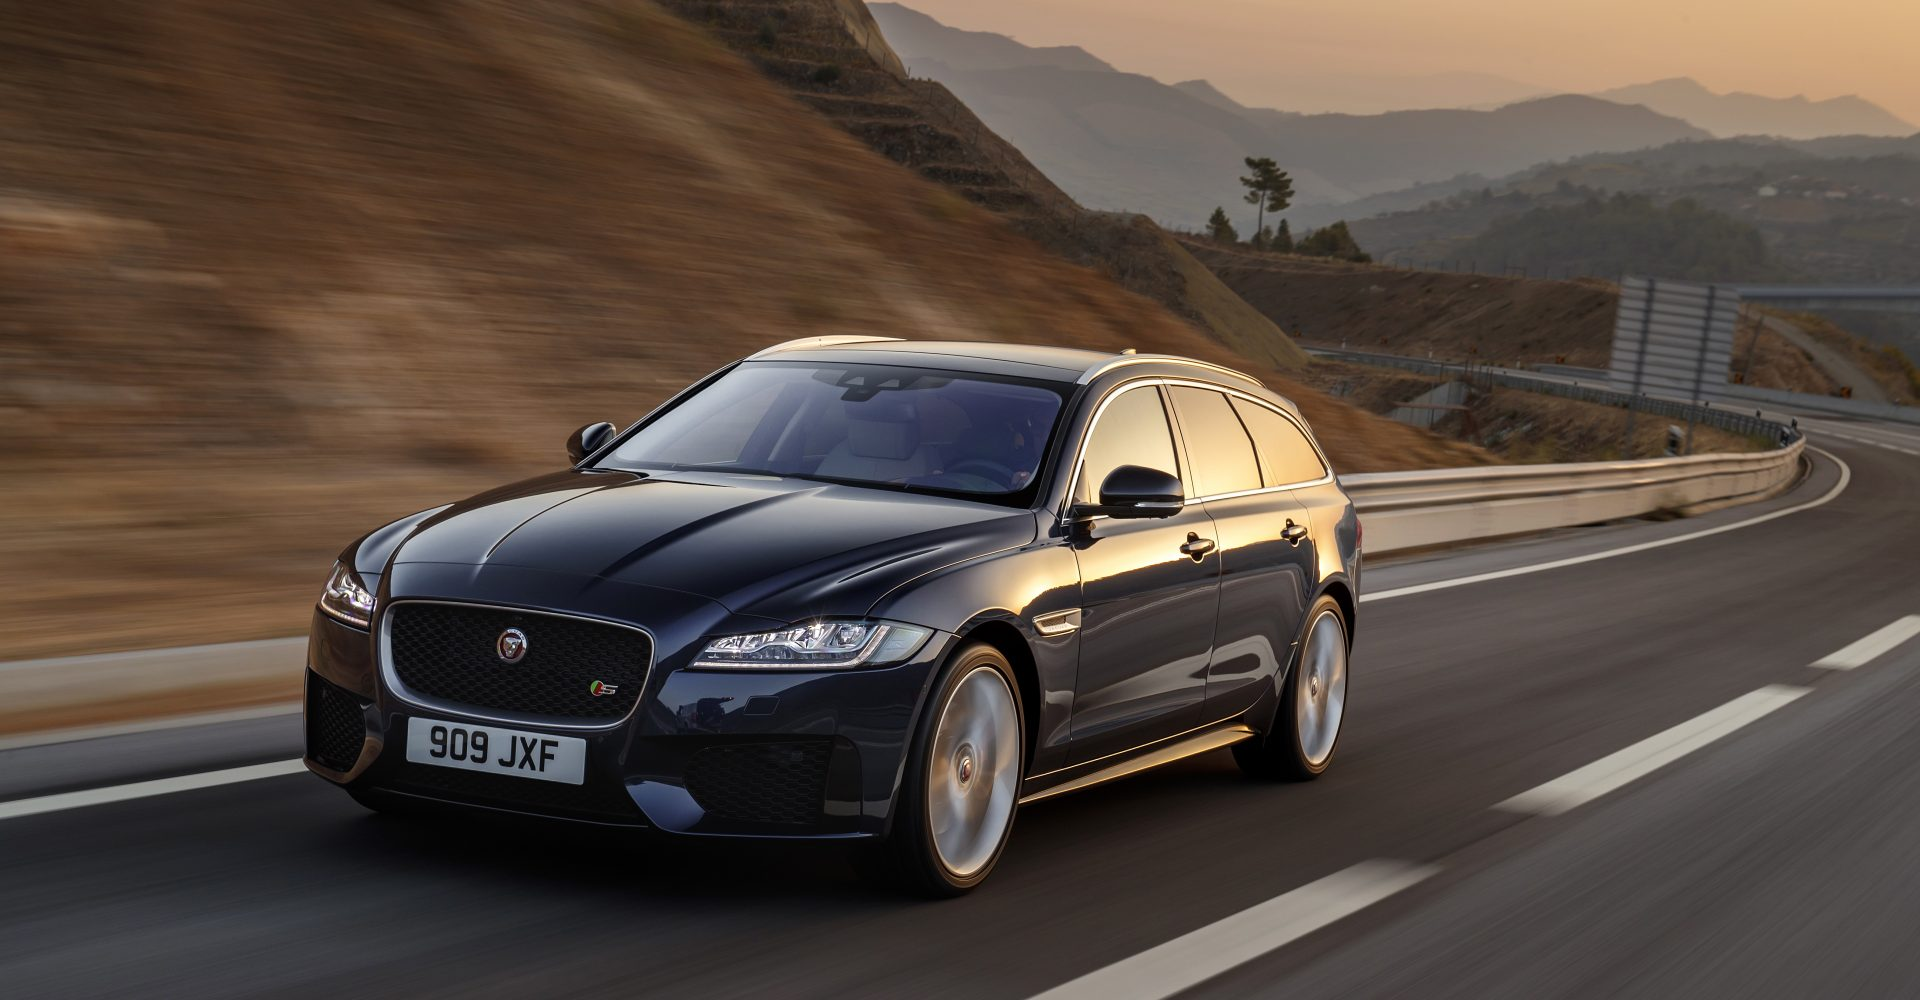 Here are five things we've found out about the new Jaguar XF Sportbrake